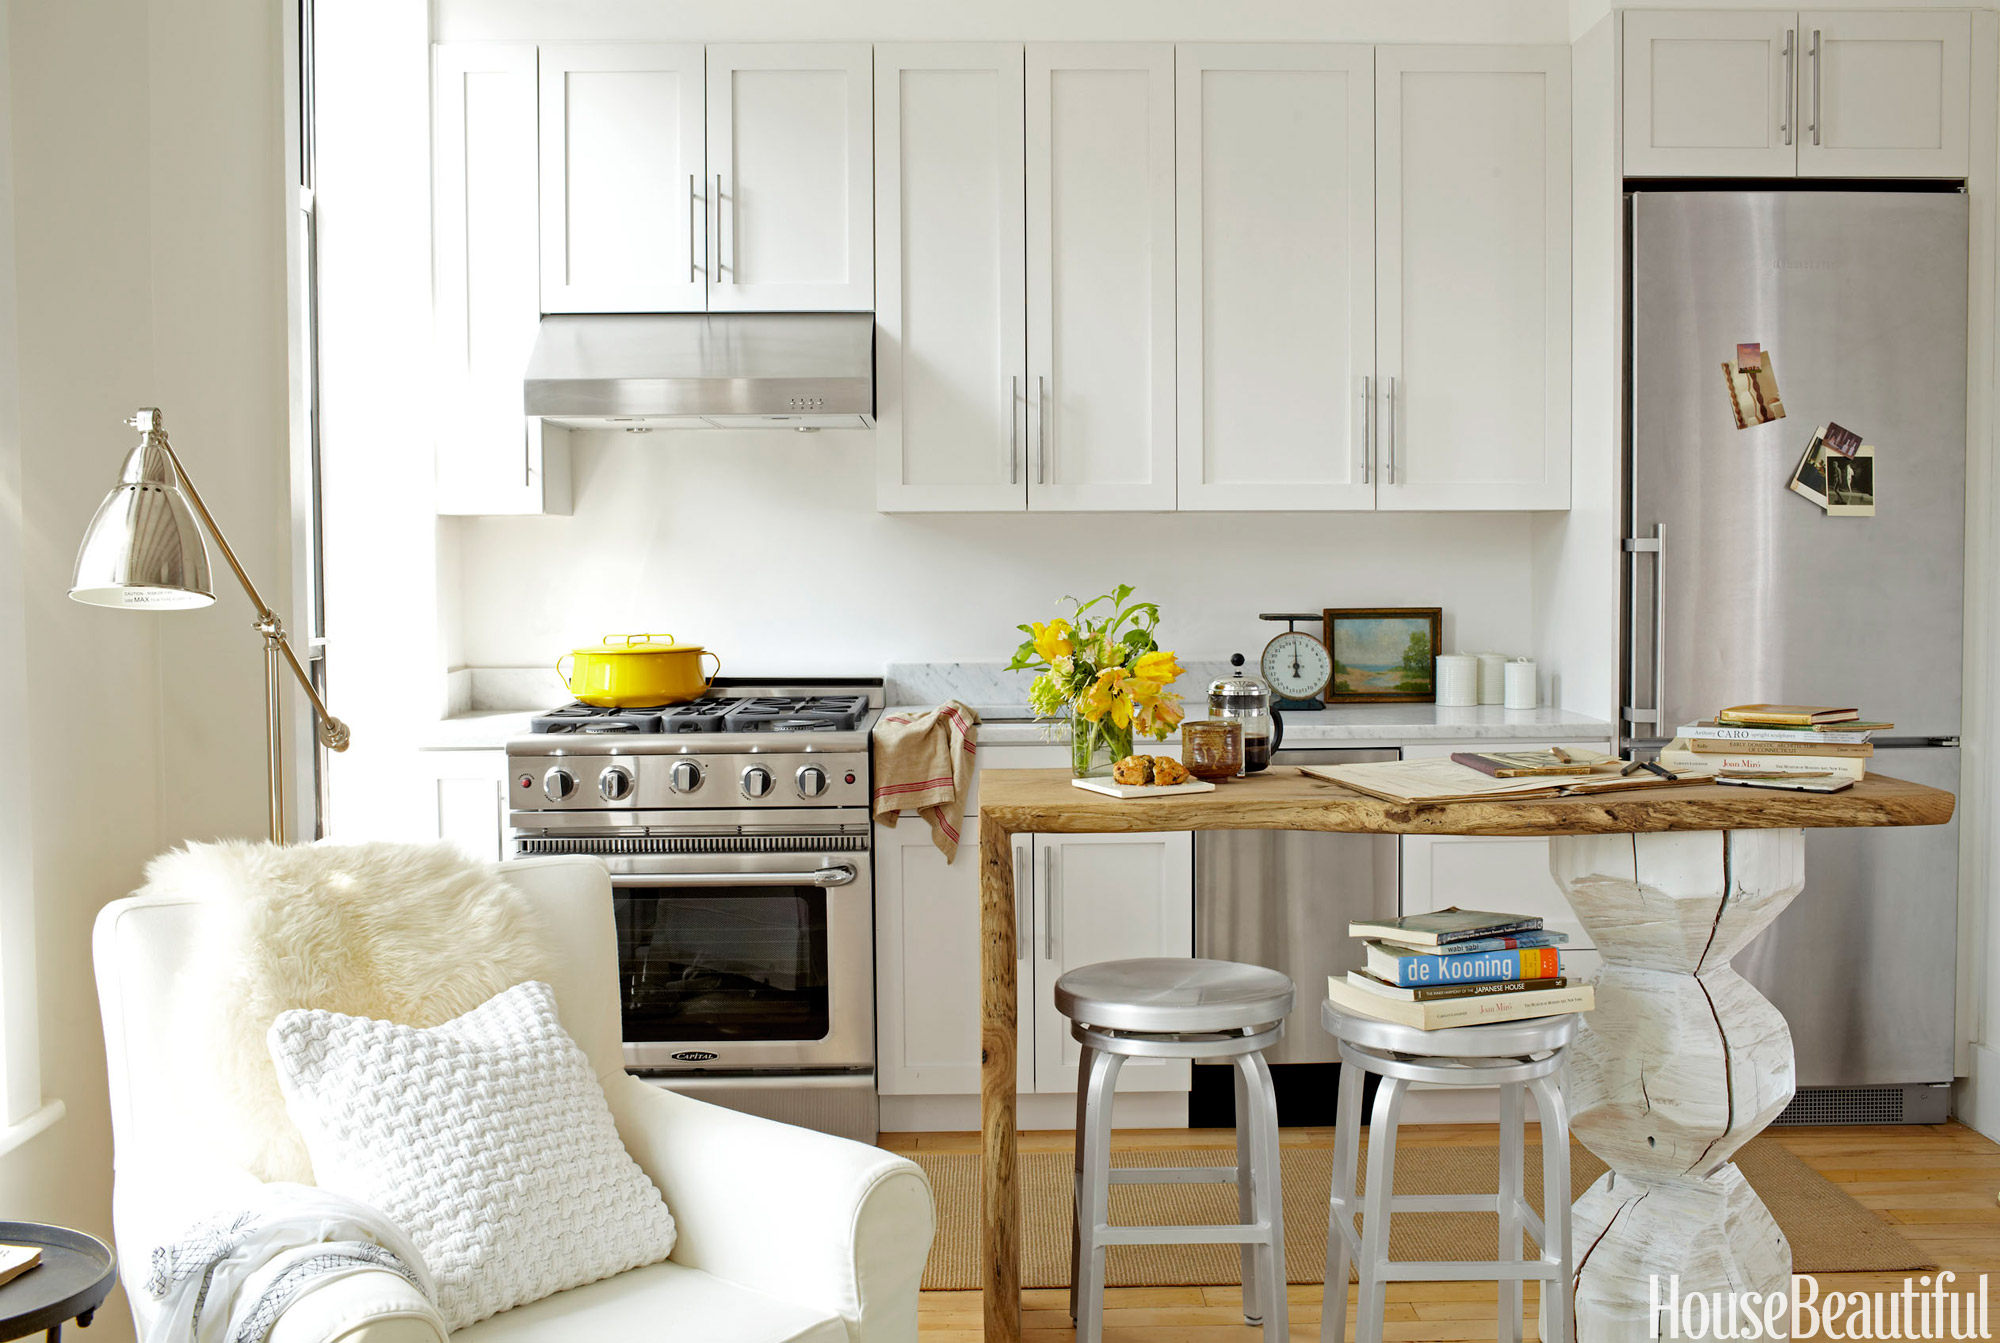 17 Best Small Kitchen Design Ideas - Decorating Solutions ... on Small Kitchen Remodel Ideas  id=65856